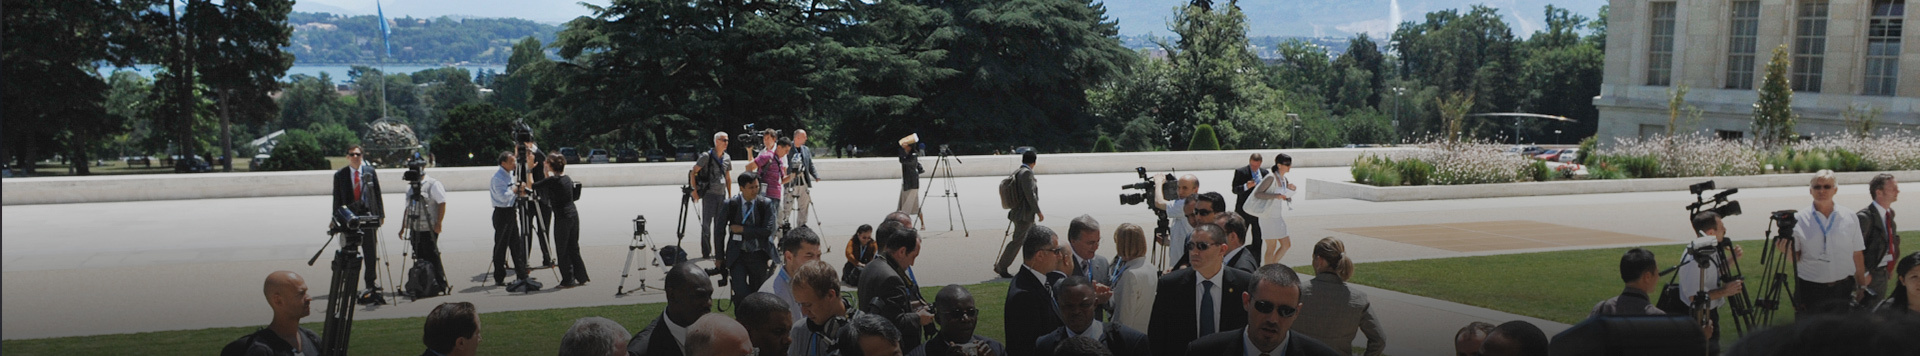 Journalists and videographers muster on the Palais des Nations plaza.